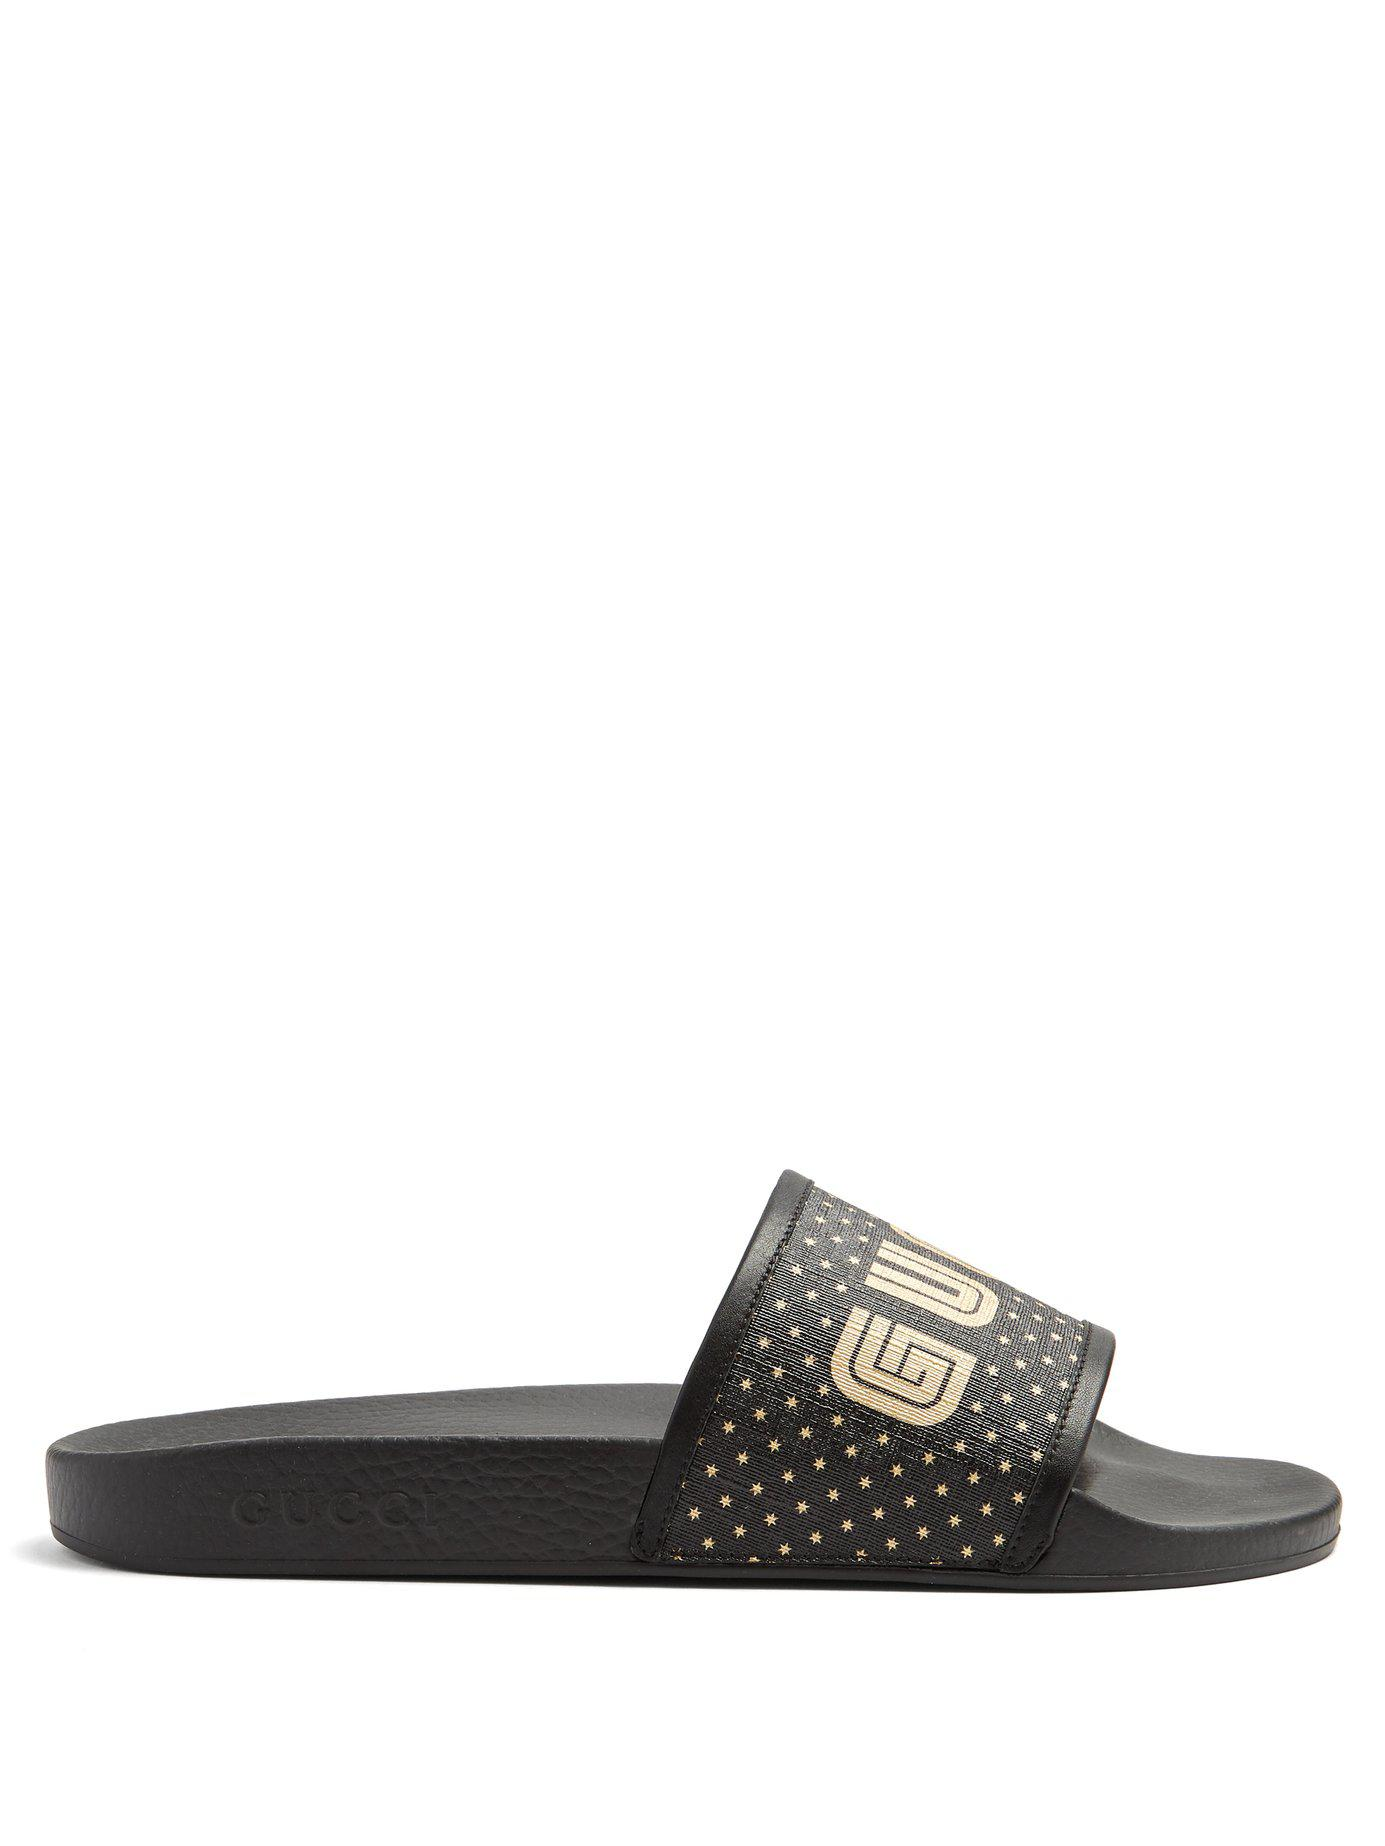 a2668beb4 Lyst - Gucci Logo Print Leather Trimmed Rubber Pool Slides in Black ...